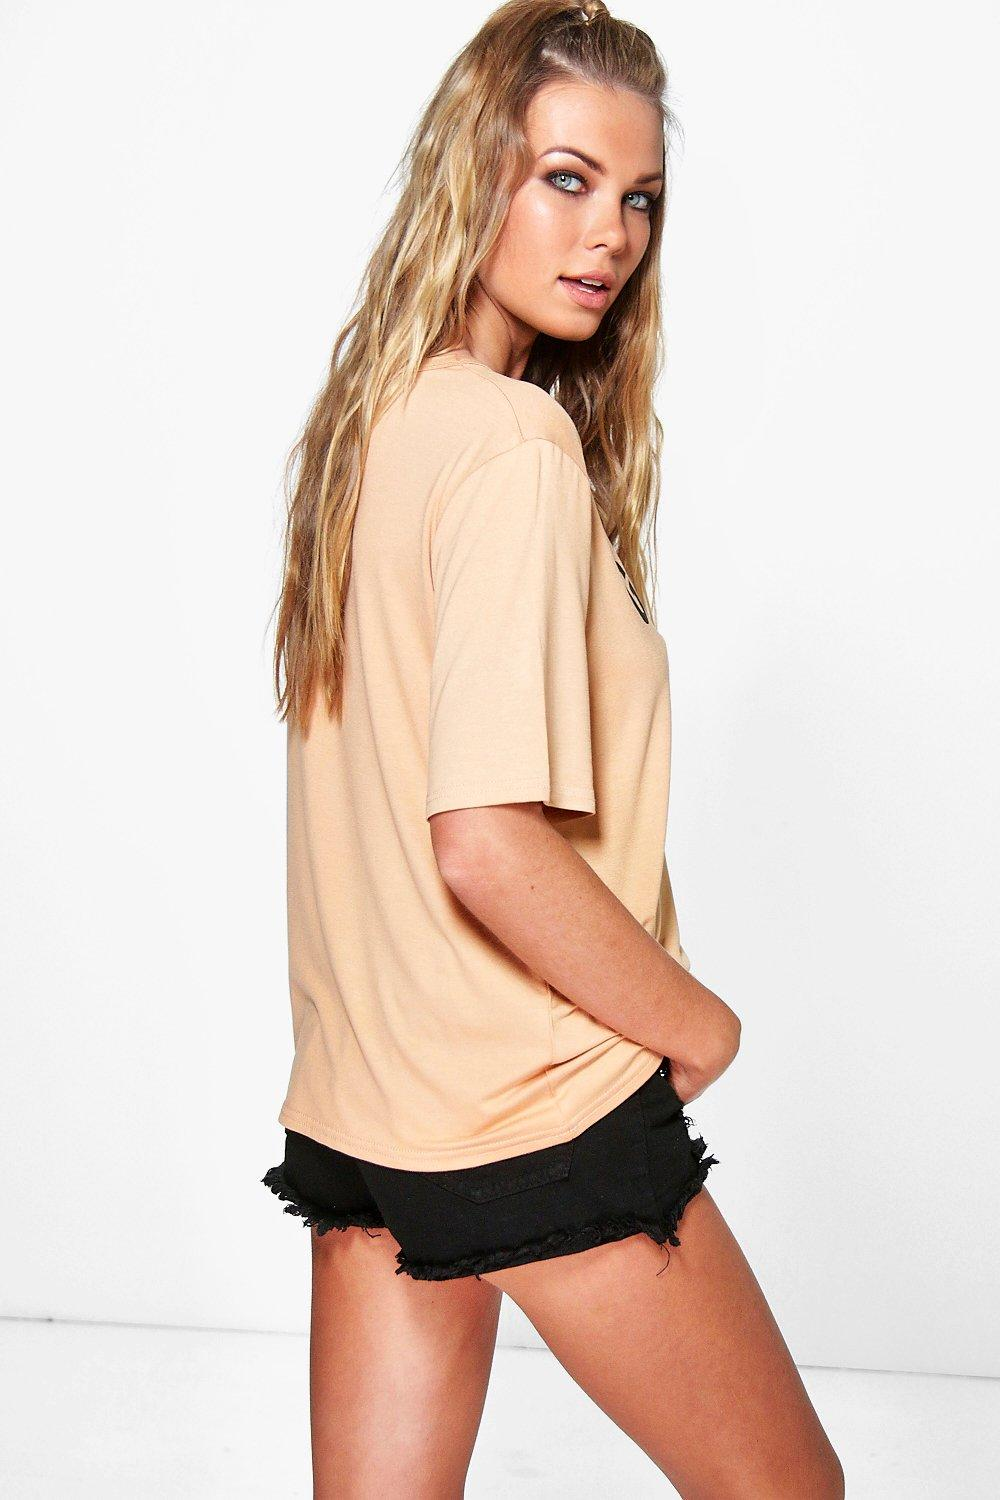 Free shipping BOTH ways on womens oversized t shirts, from our vast selection of styles. Fast delivery, and 24/7/ real-person service with a smile. Click or call